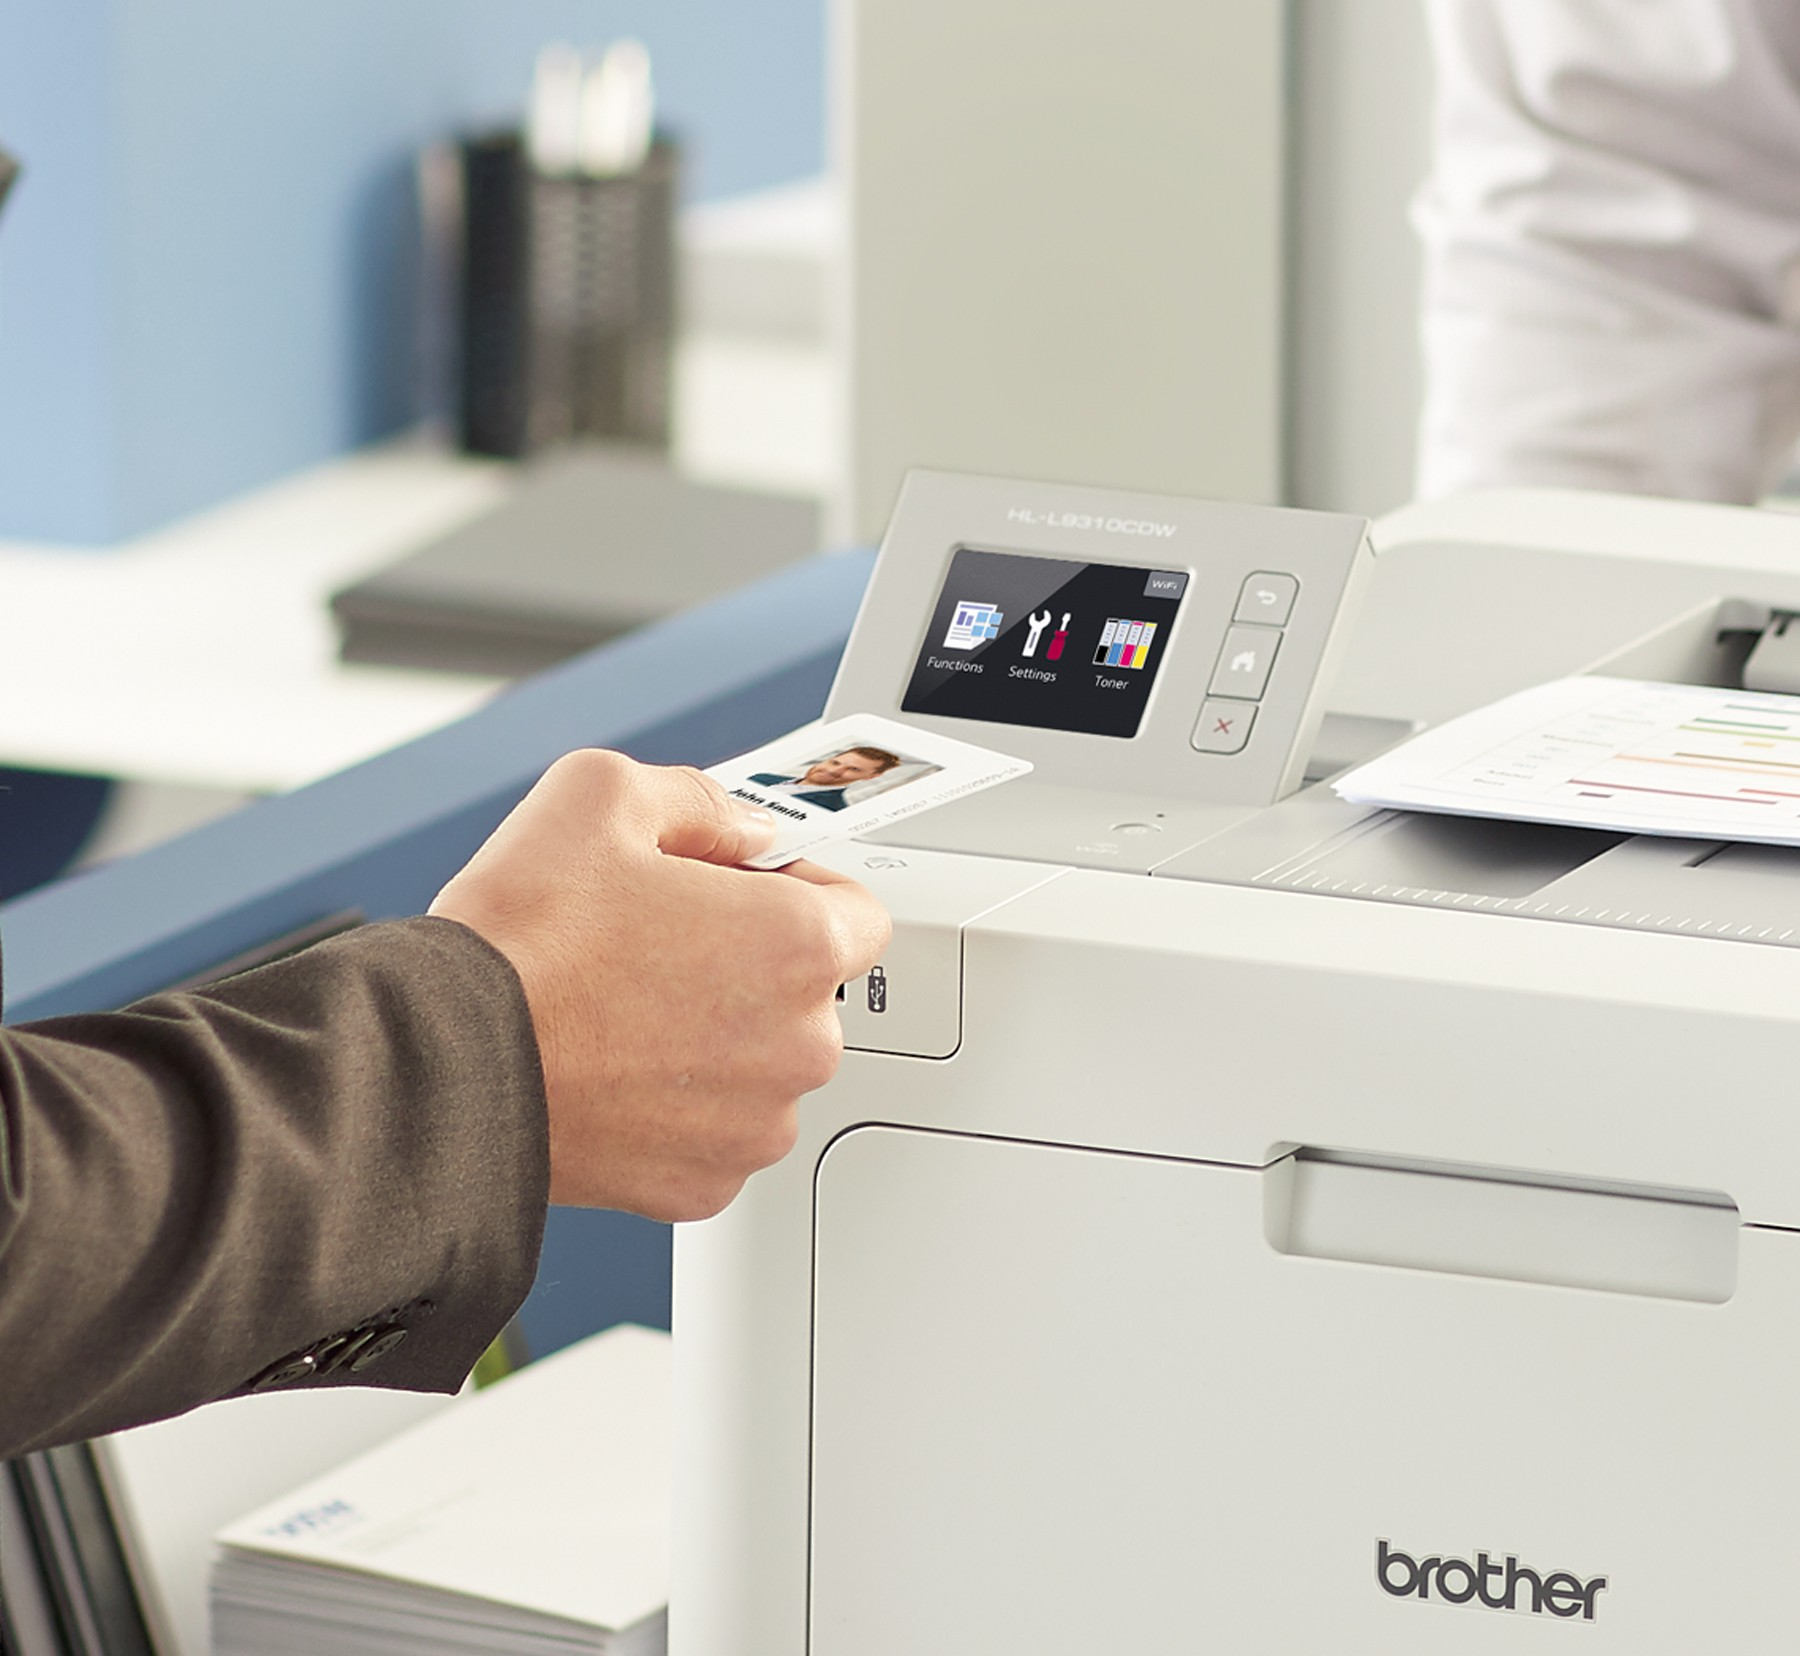 Brother Printers and All-In-Ones from The Wilson Group